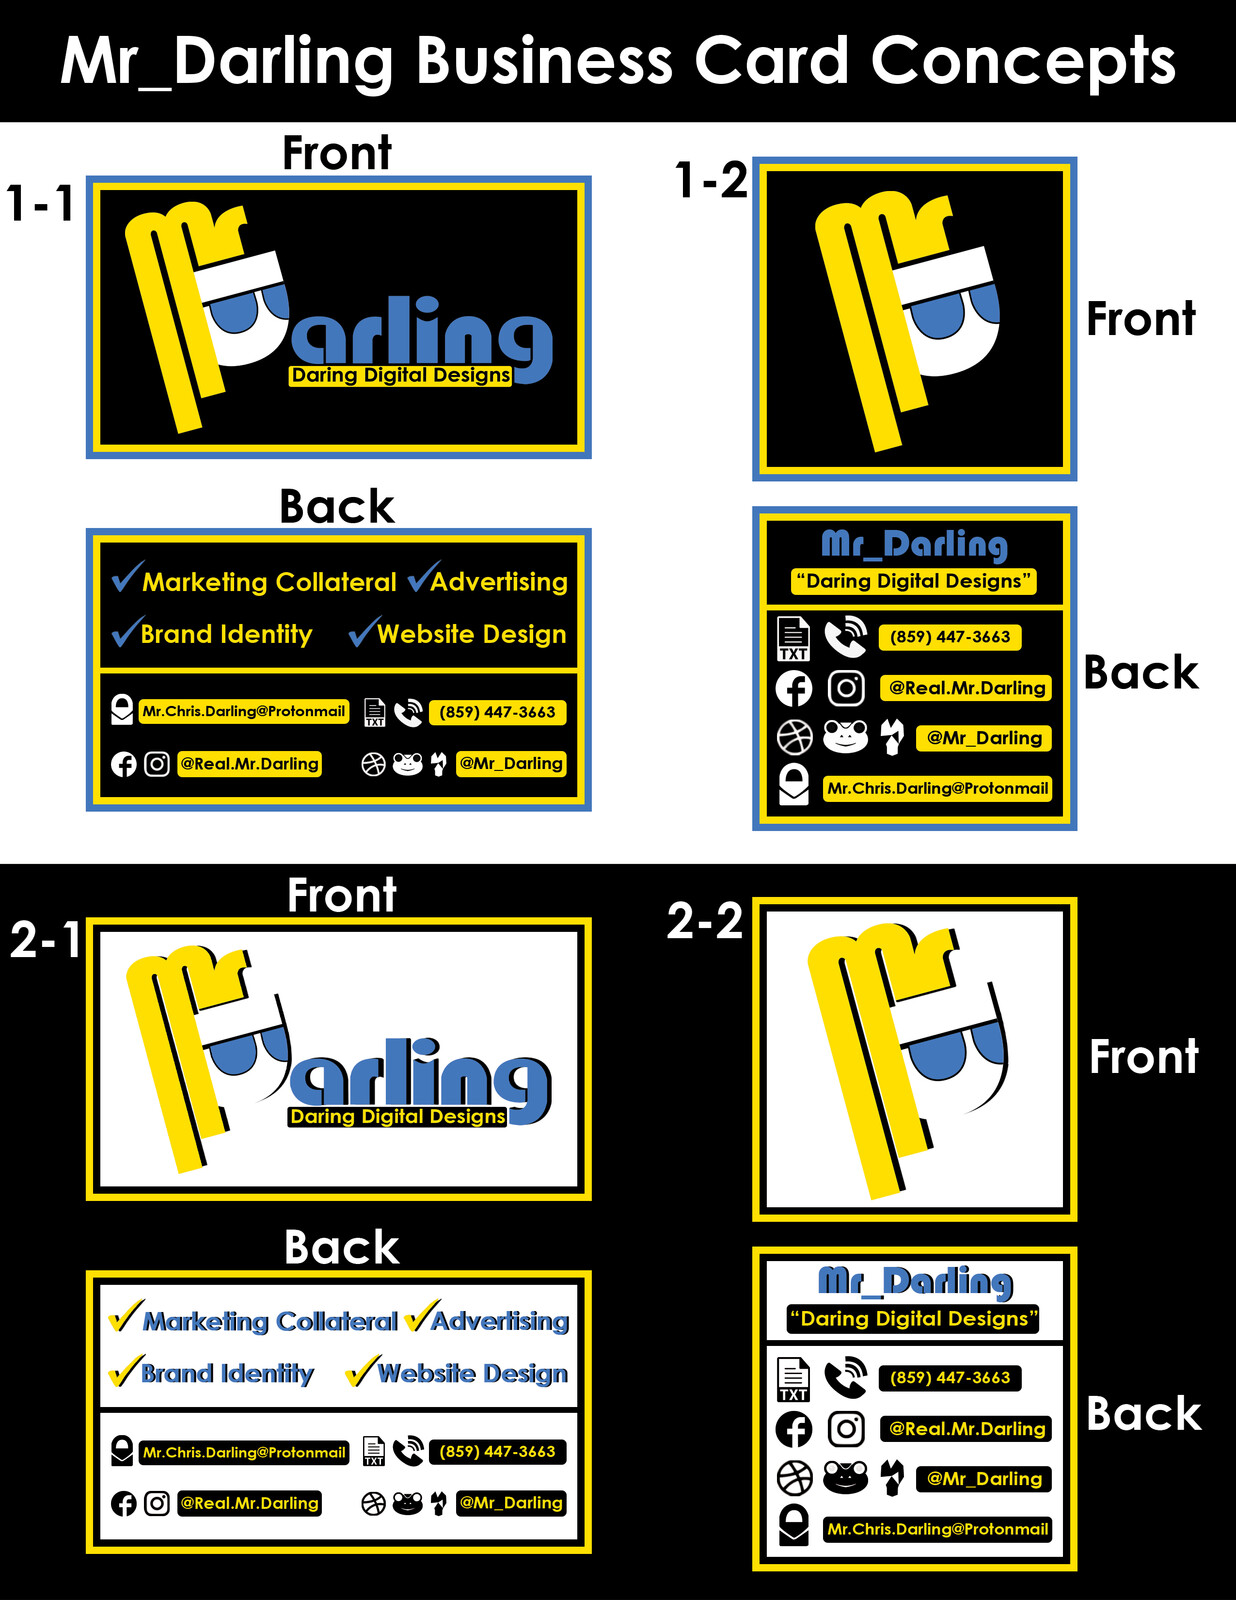 The different variations for the 2nd round of concept designs for the business card